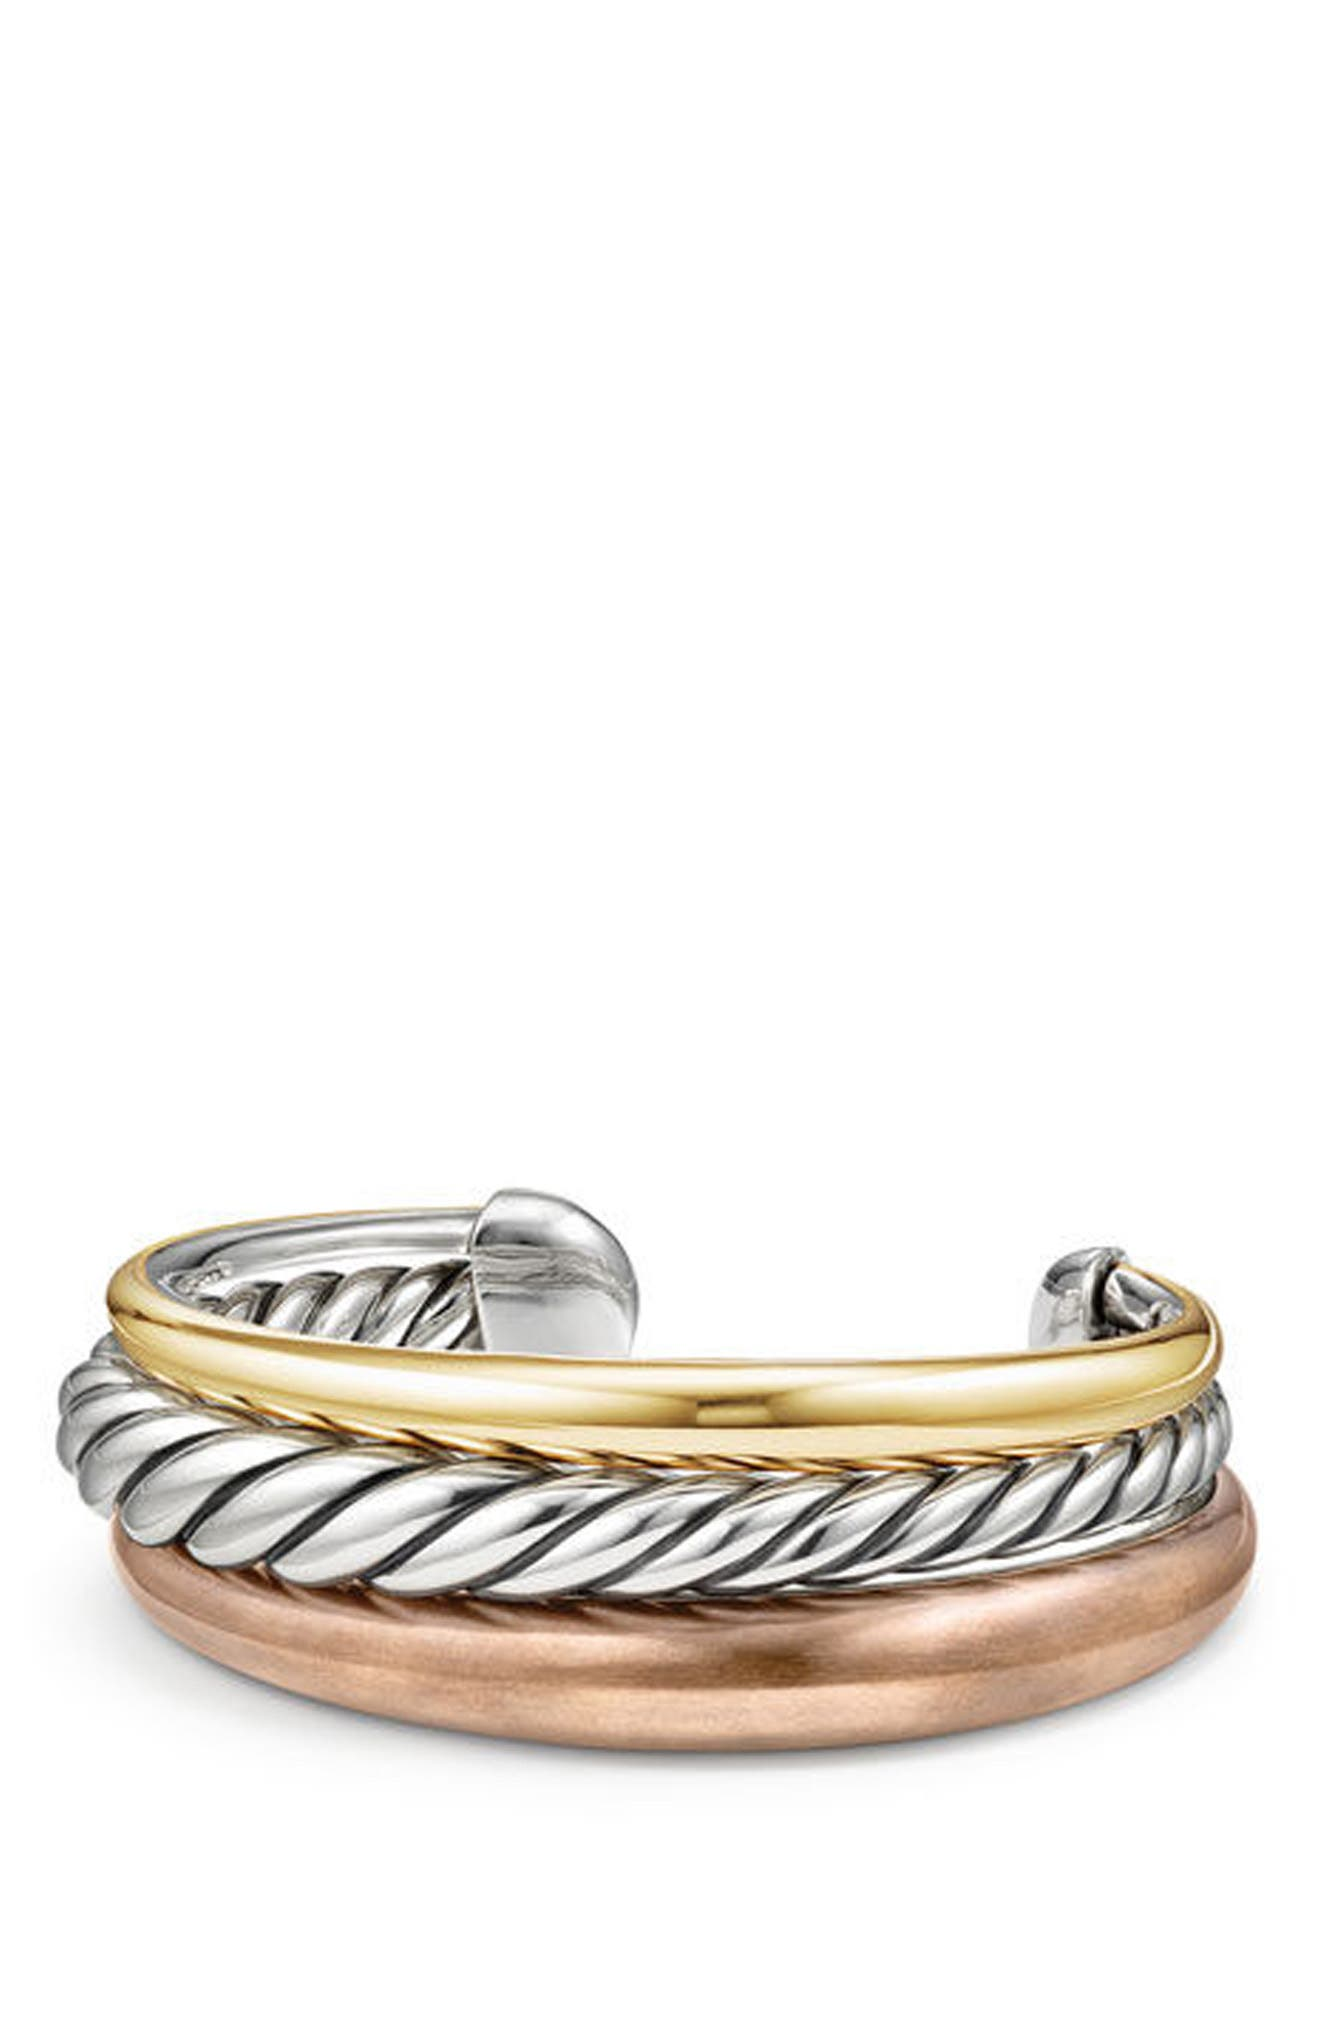 David Yurman Pure Form Mixed Metal 3-Row Cuff